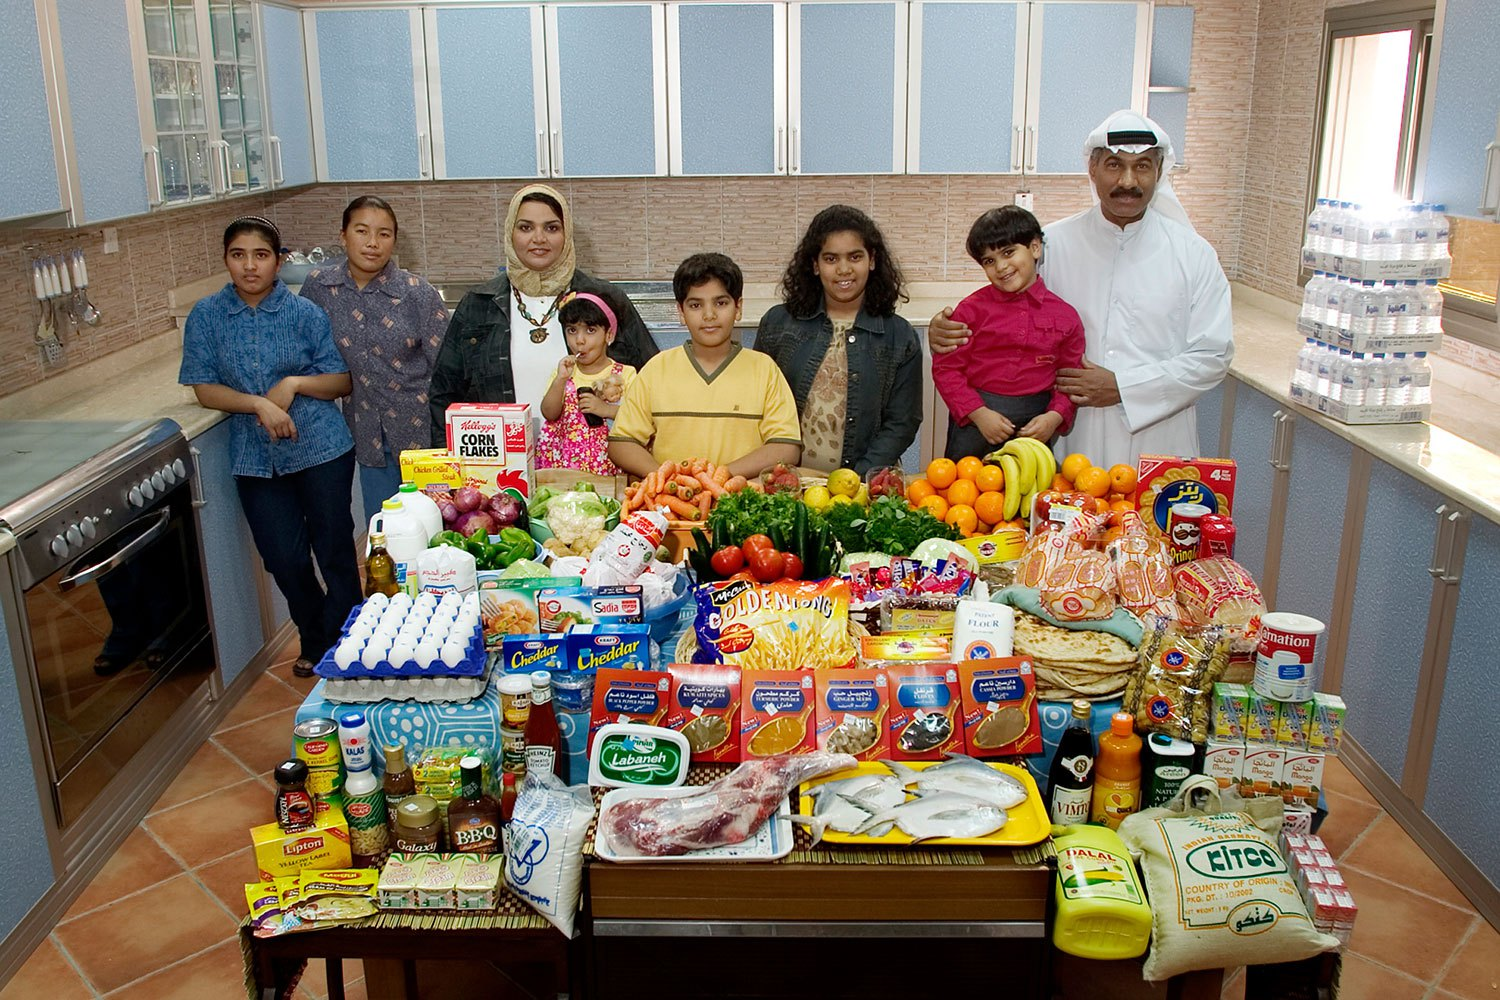 Kuwait: The Al Haggan family of Kuwait City.                                                              Food expenditure for one week: 63.63 dinar or $221.45. Family recipe: Chicken biryani with basmati rice.